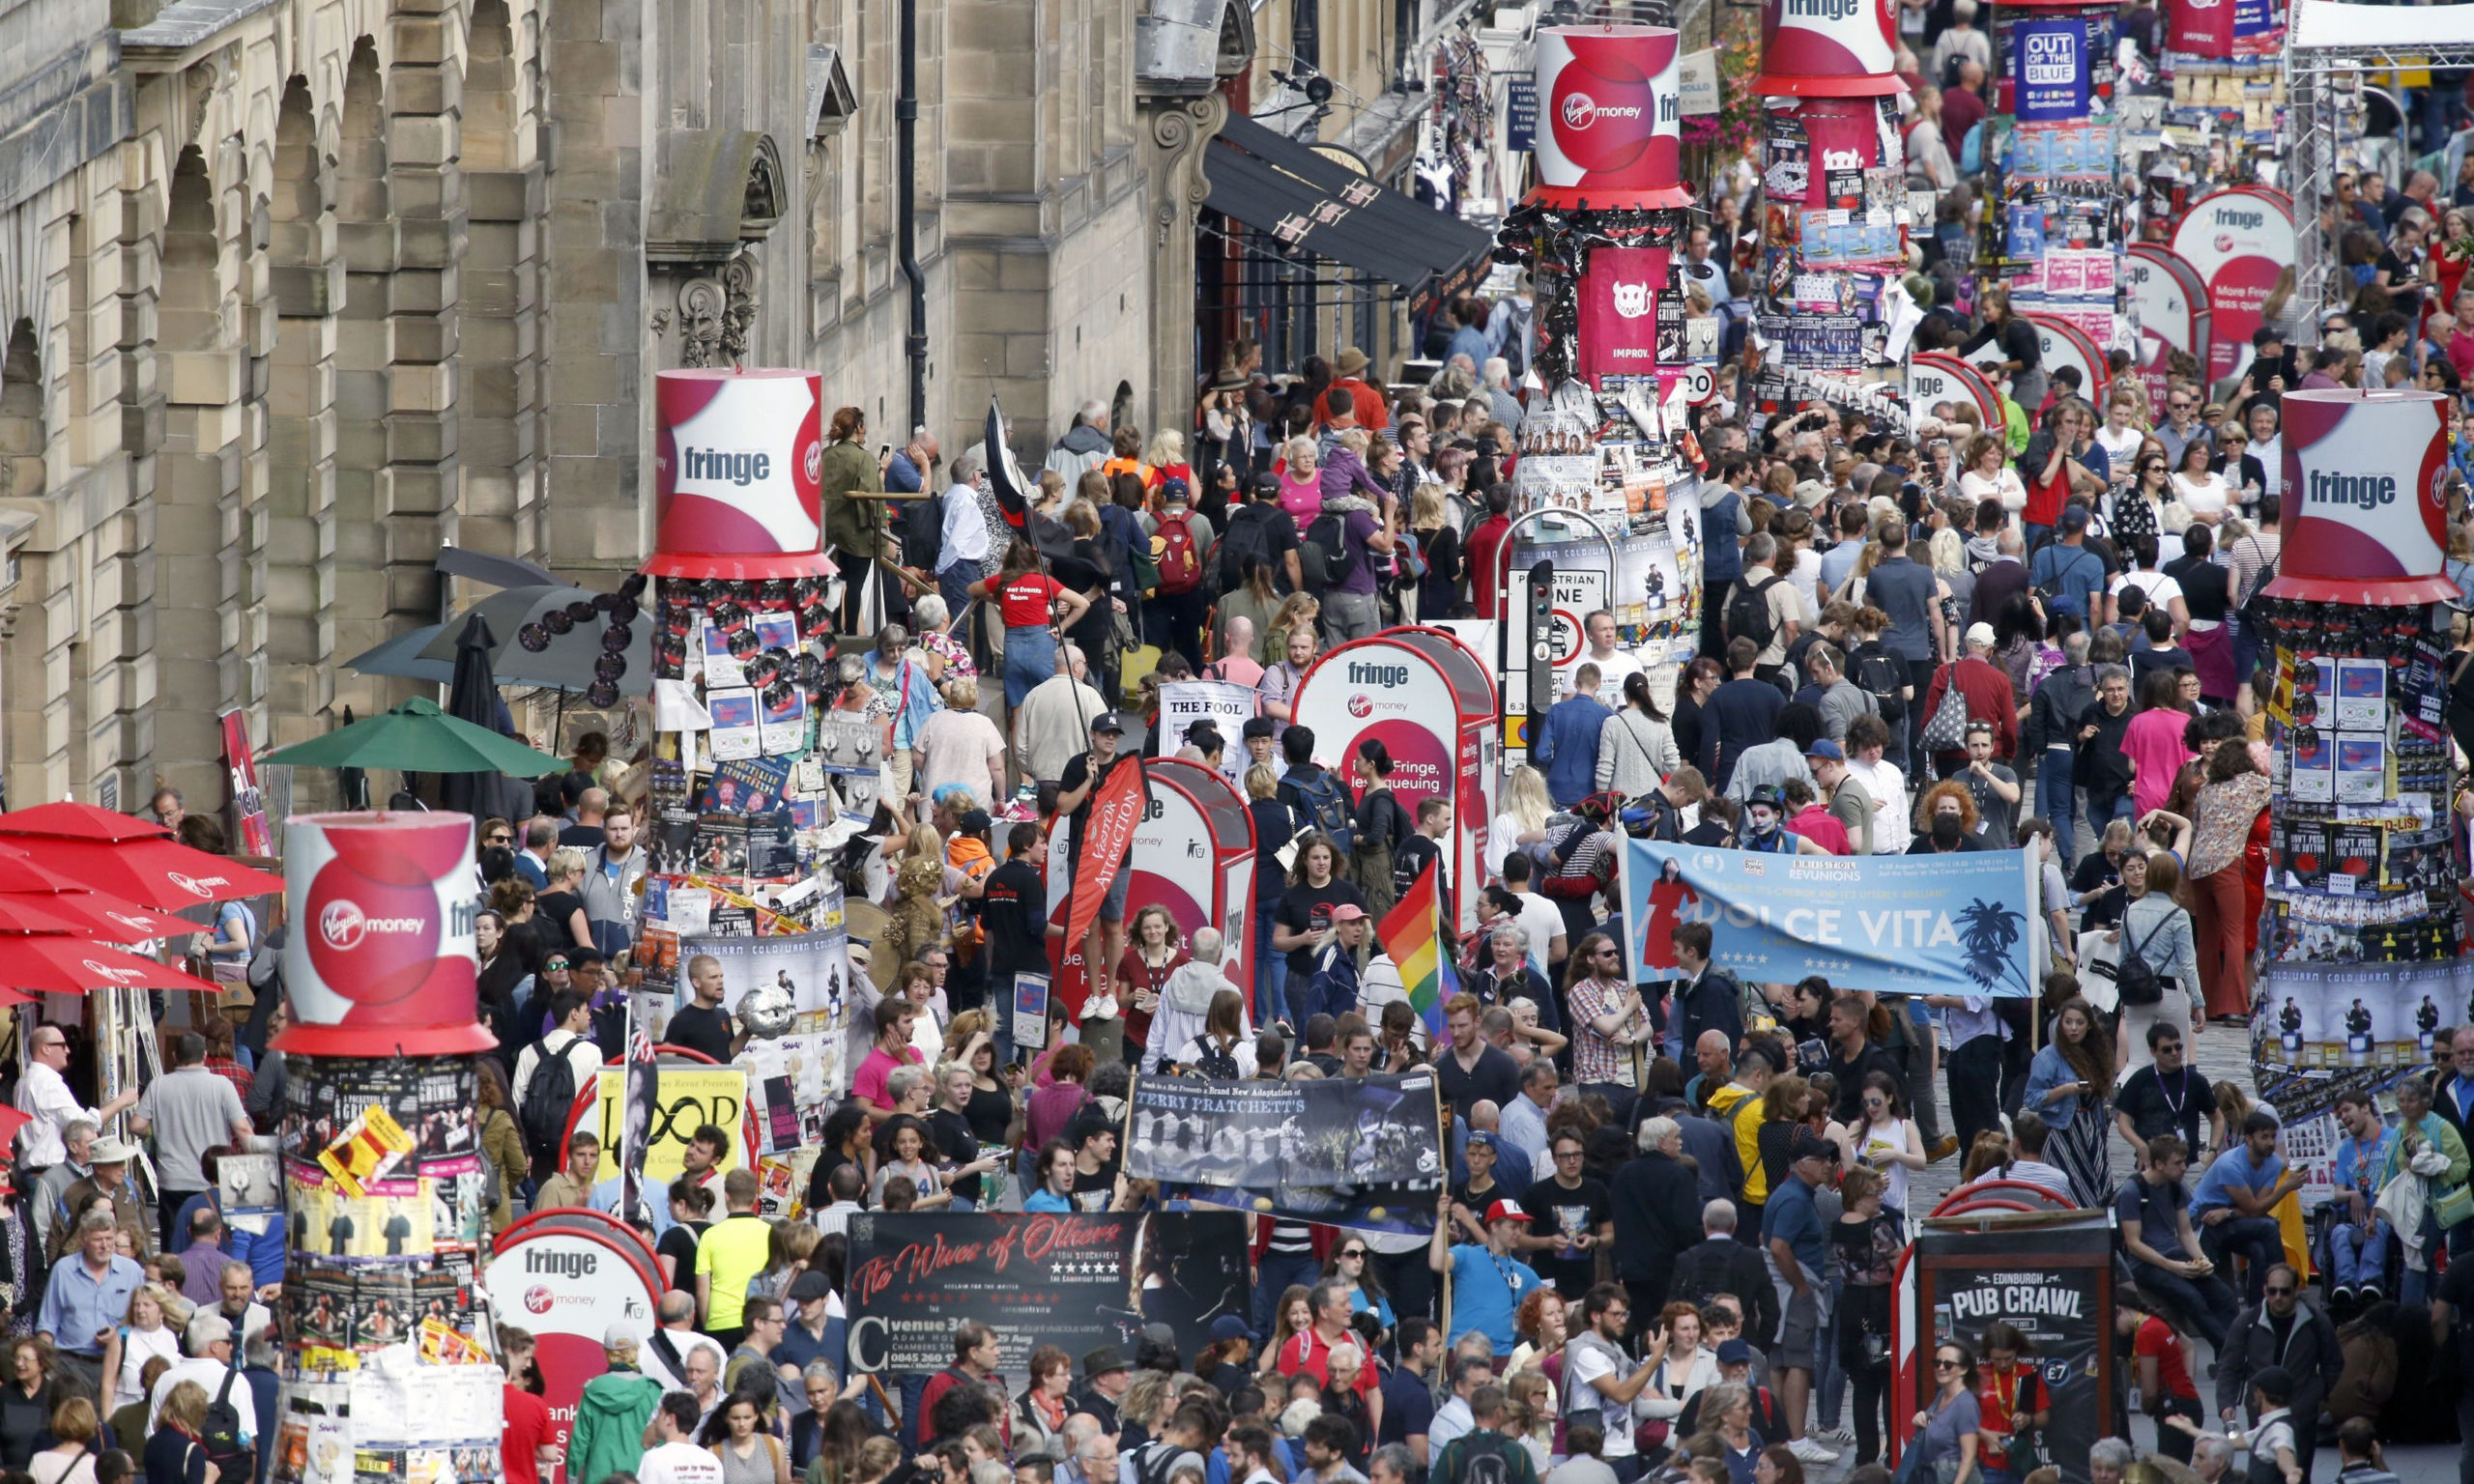 Fringe crowds on Edinburgh's Royal Mile.